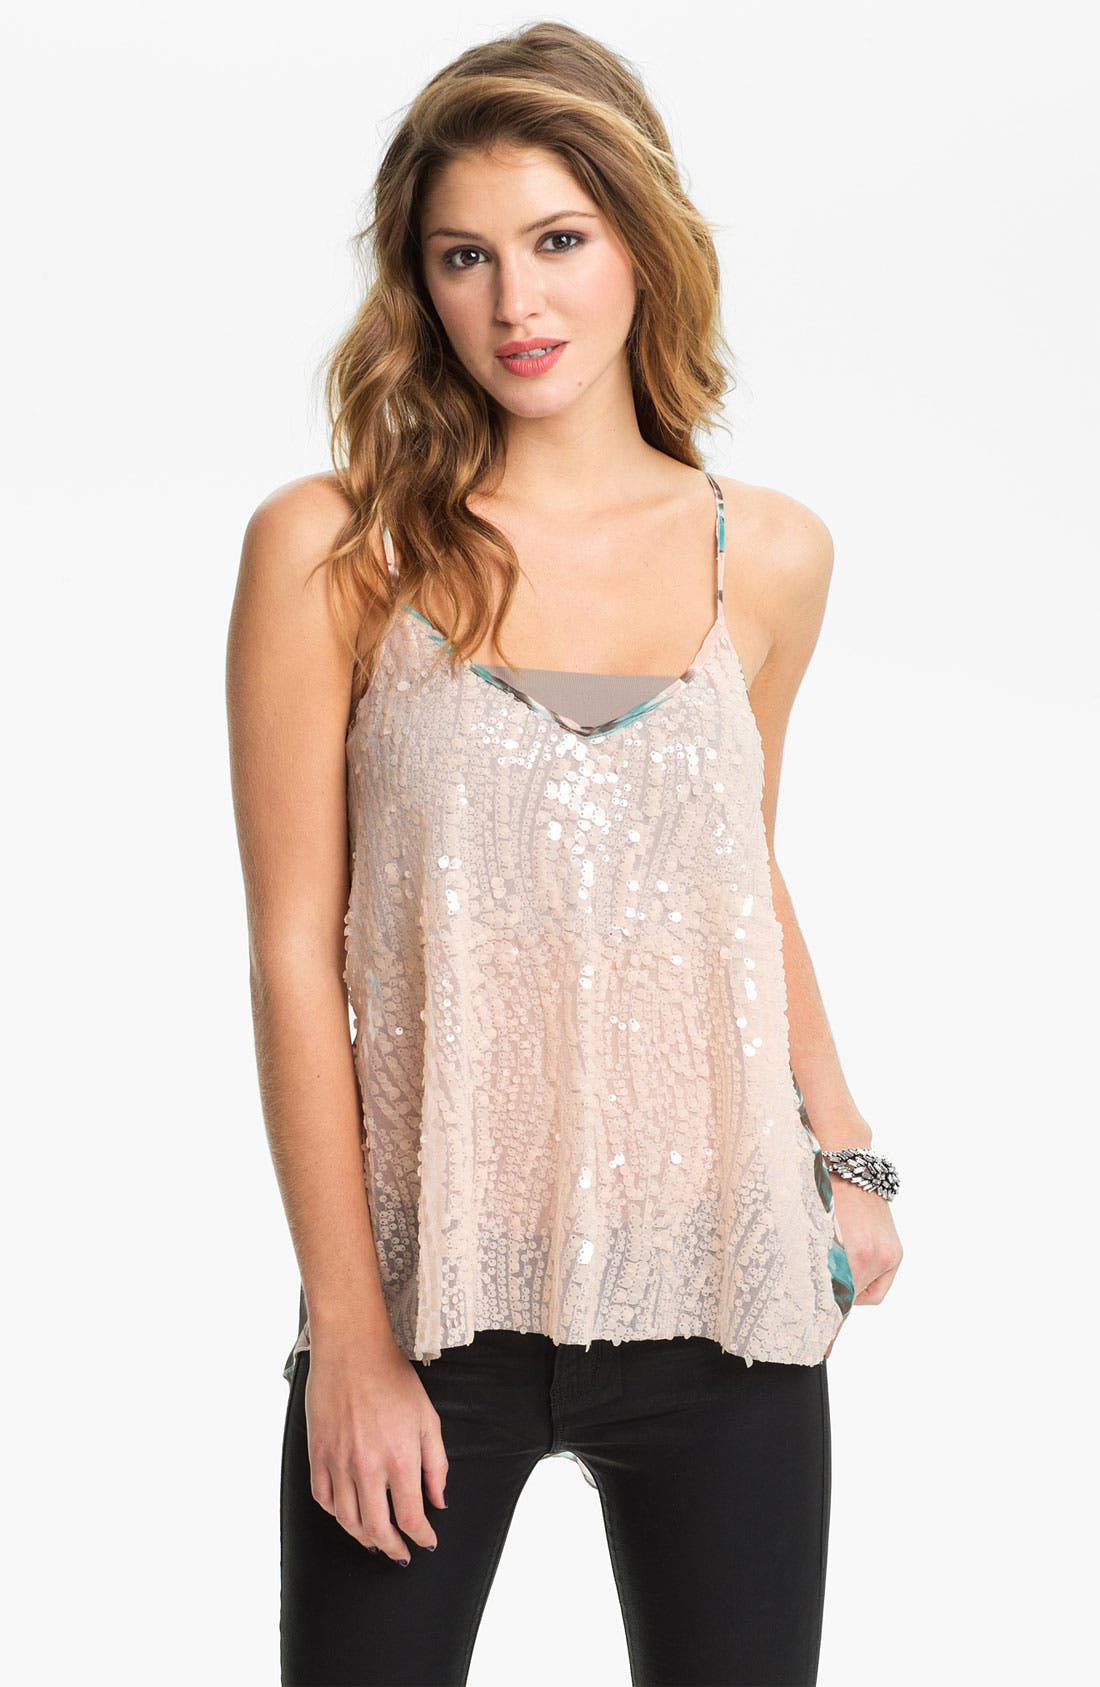 Main Image - Love Squared Mix Media Sequin Camisole (Juniors)